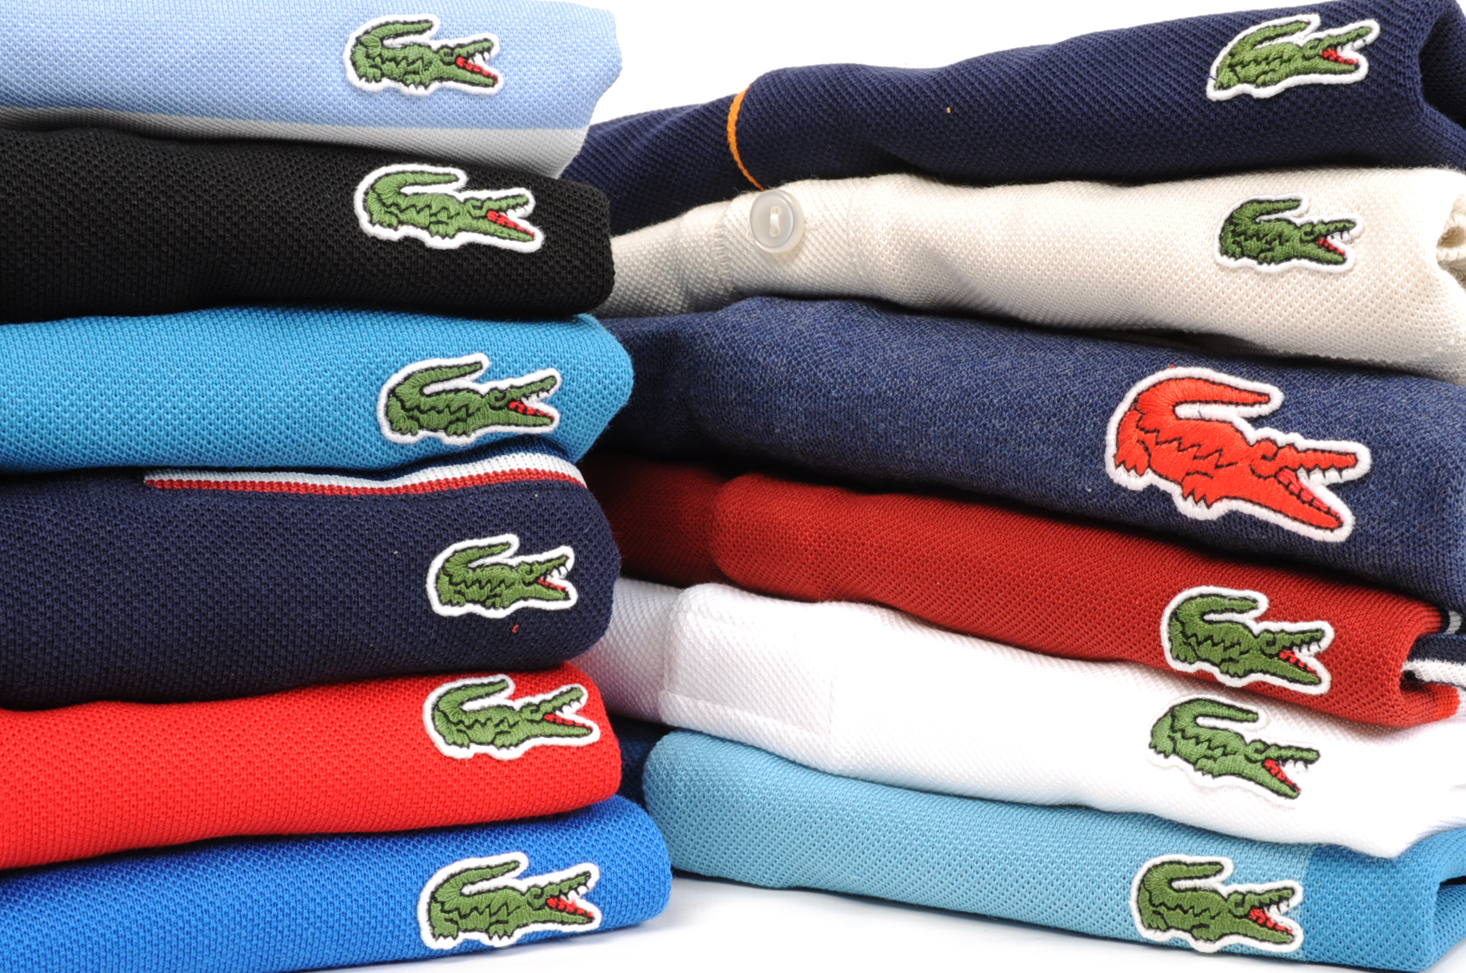 Lacoste Mens Dress Shirts